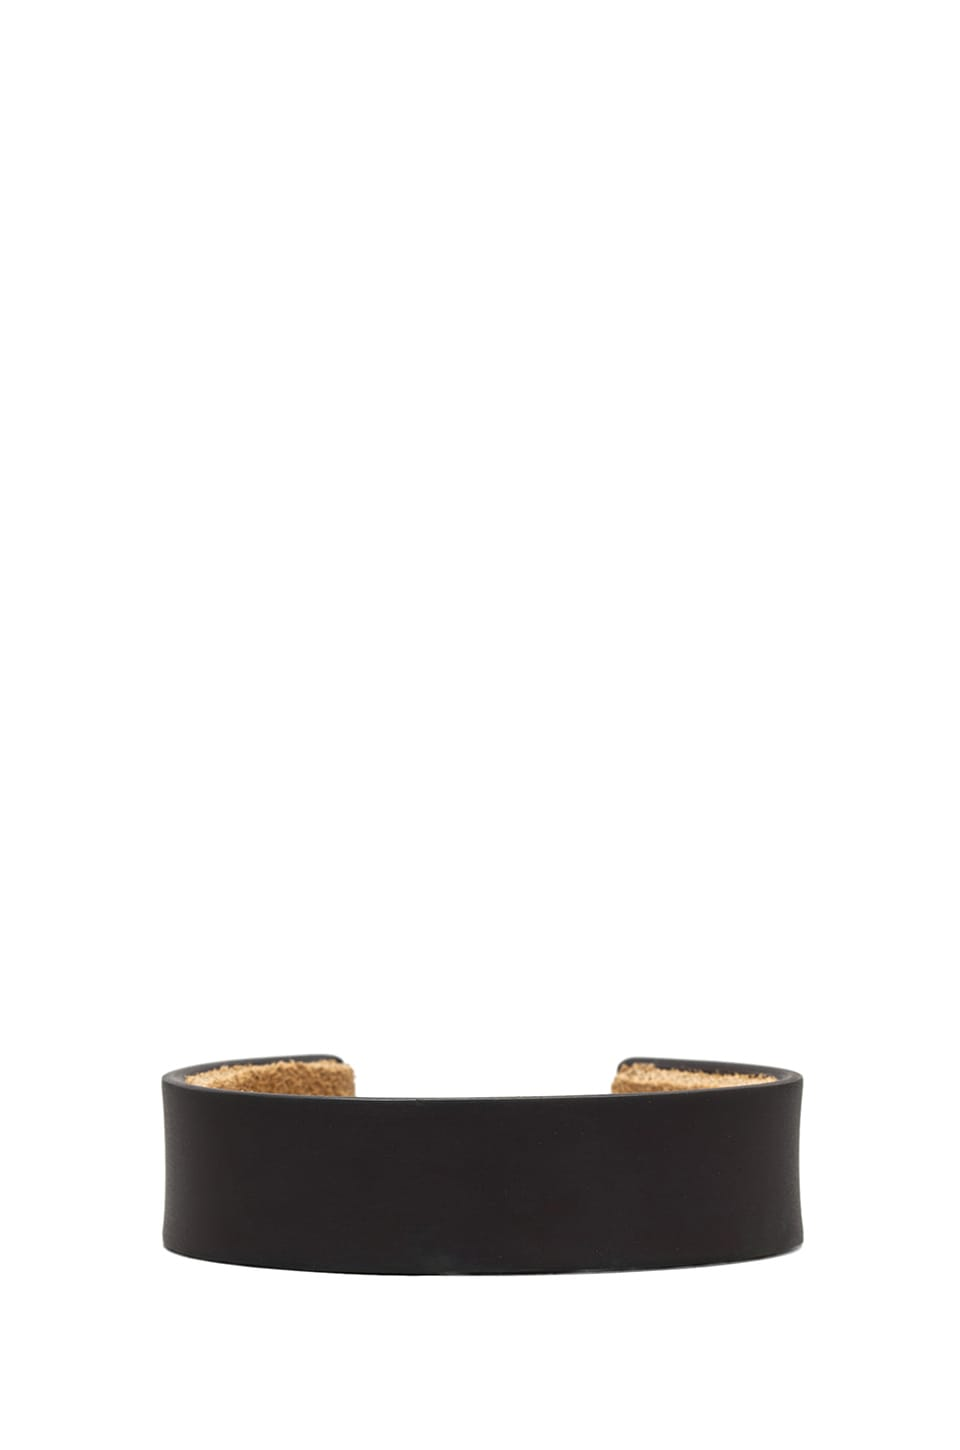 Marmol Radziner Men's Suede Lined Standard Cuff in Dark Bronze